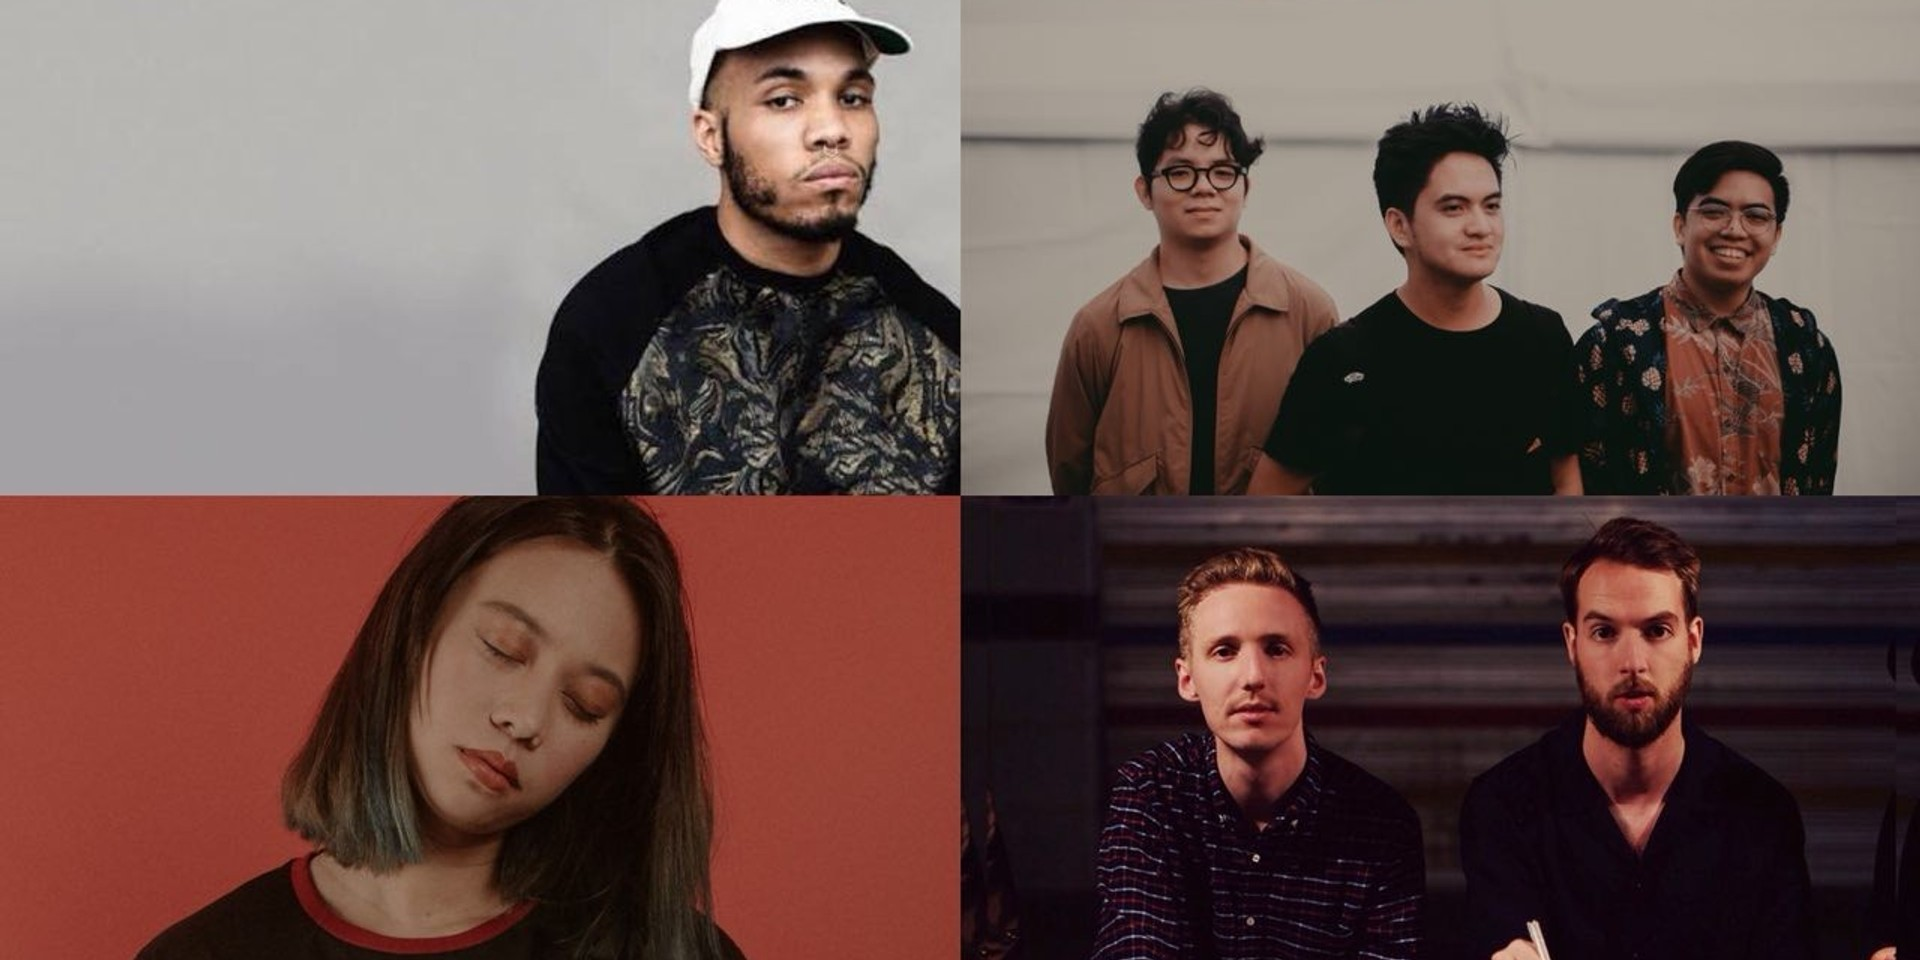 Anderson .Paak, Honne, Tom's Story, and Reese Lansangan to perform in new live music series, Karpos Live